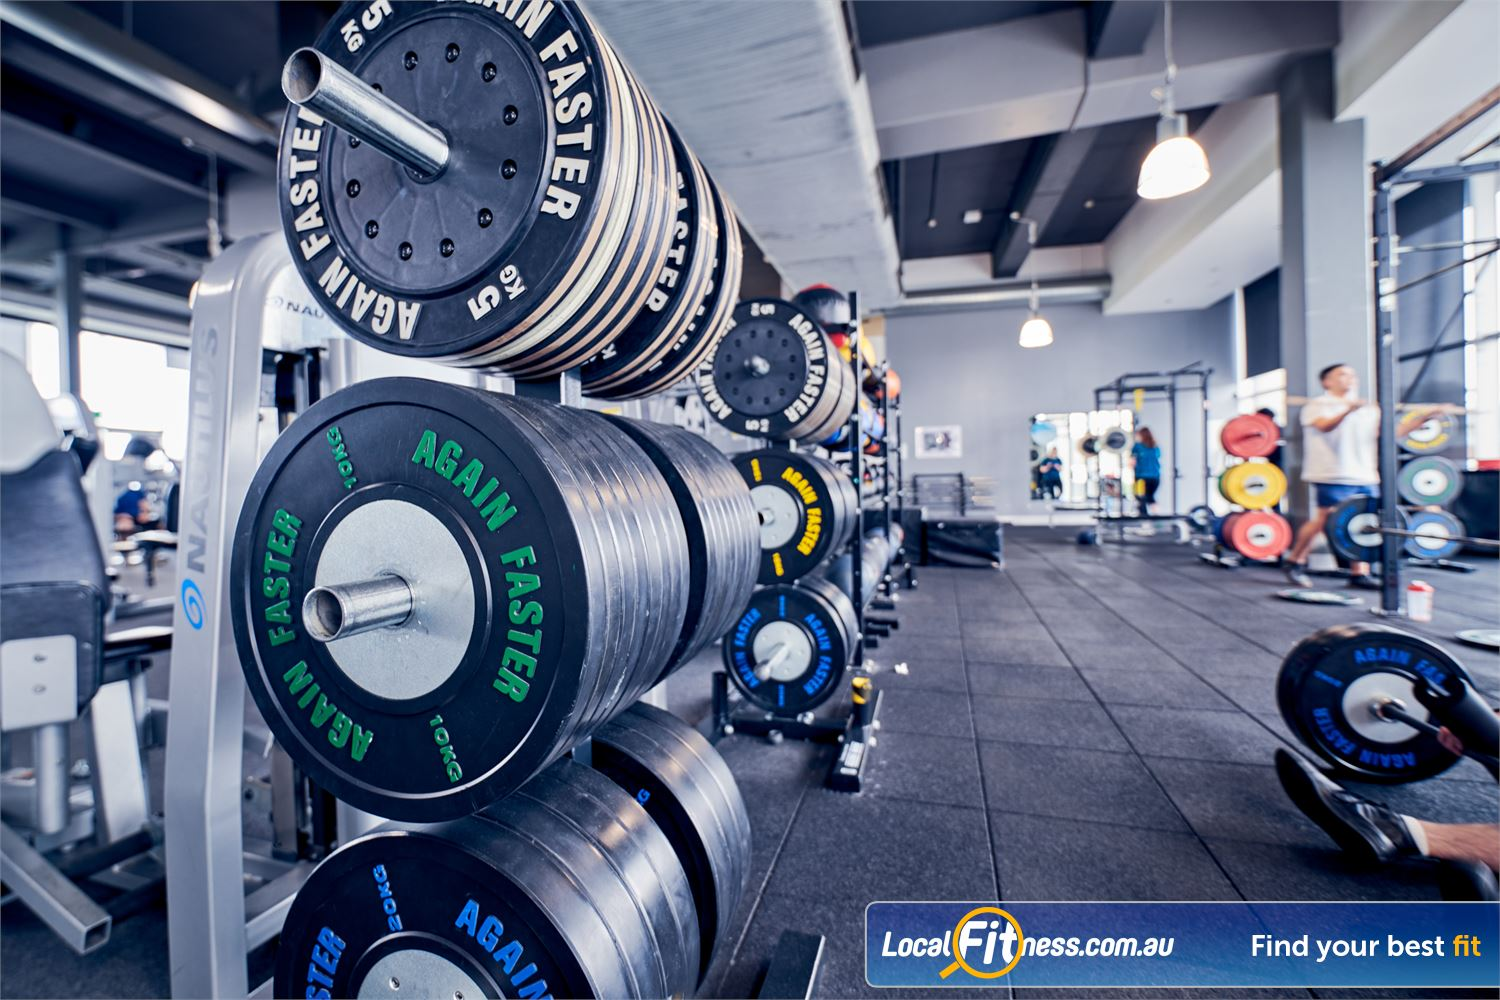 Goodlife Health Clubs Waverley Park Near Noble Park North Our Waverley Park gym includes a dedicated functional training area.